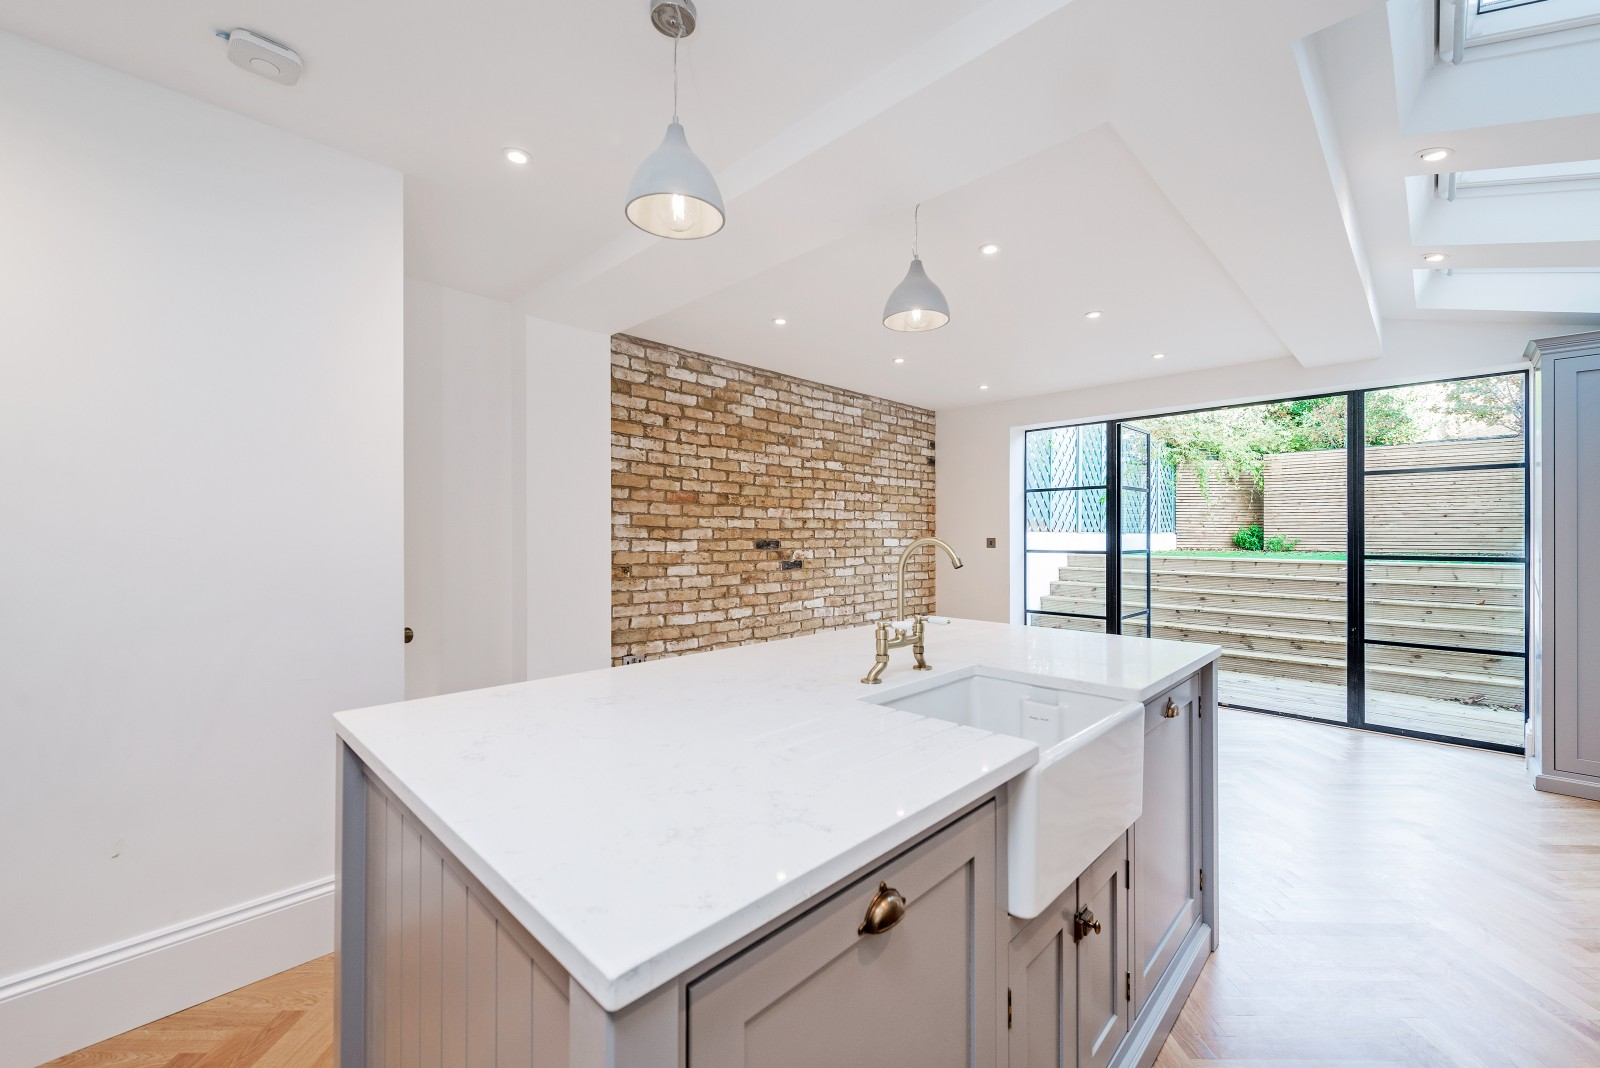 Wandsworth Bridge Road, SW6 - £850,000